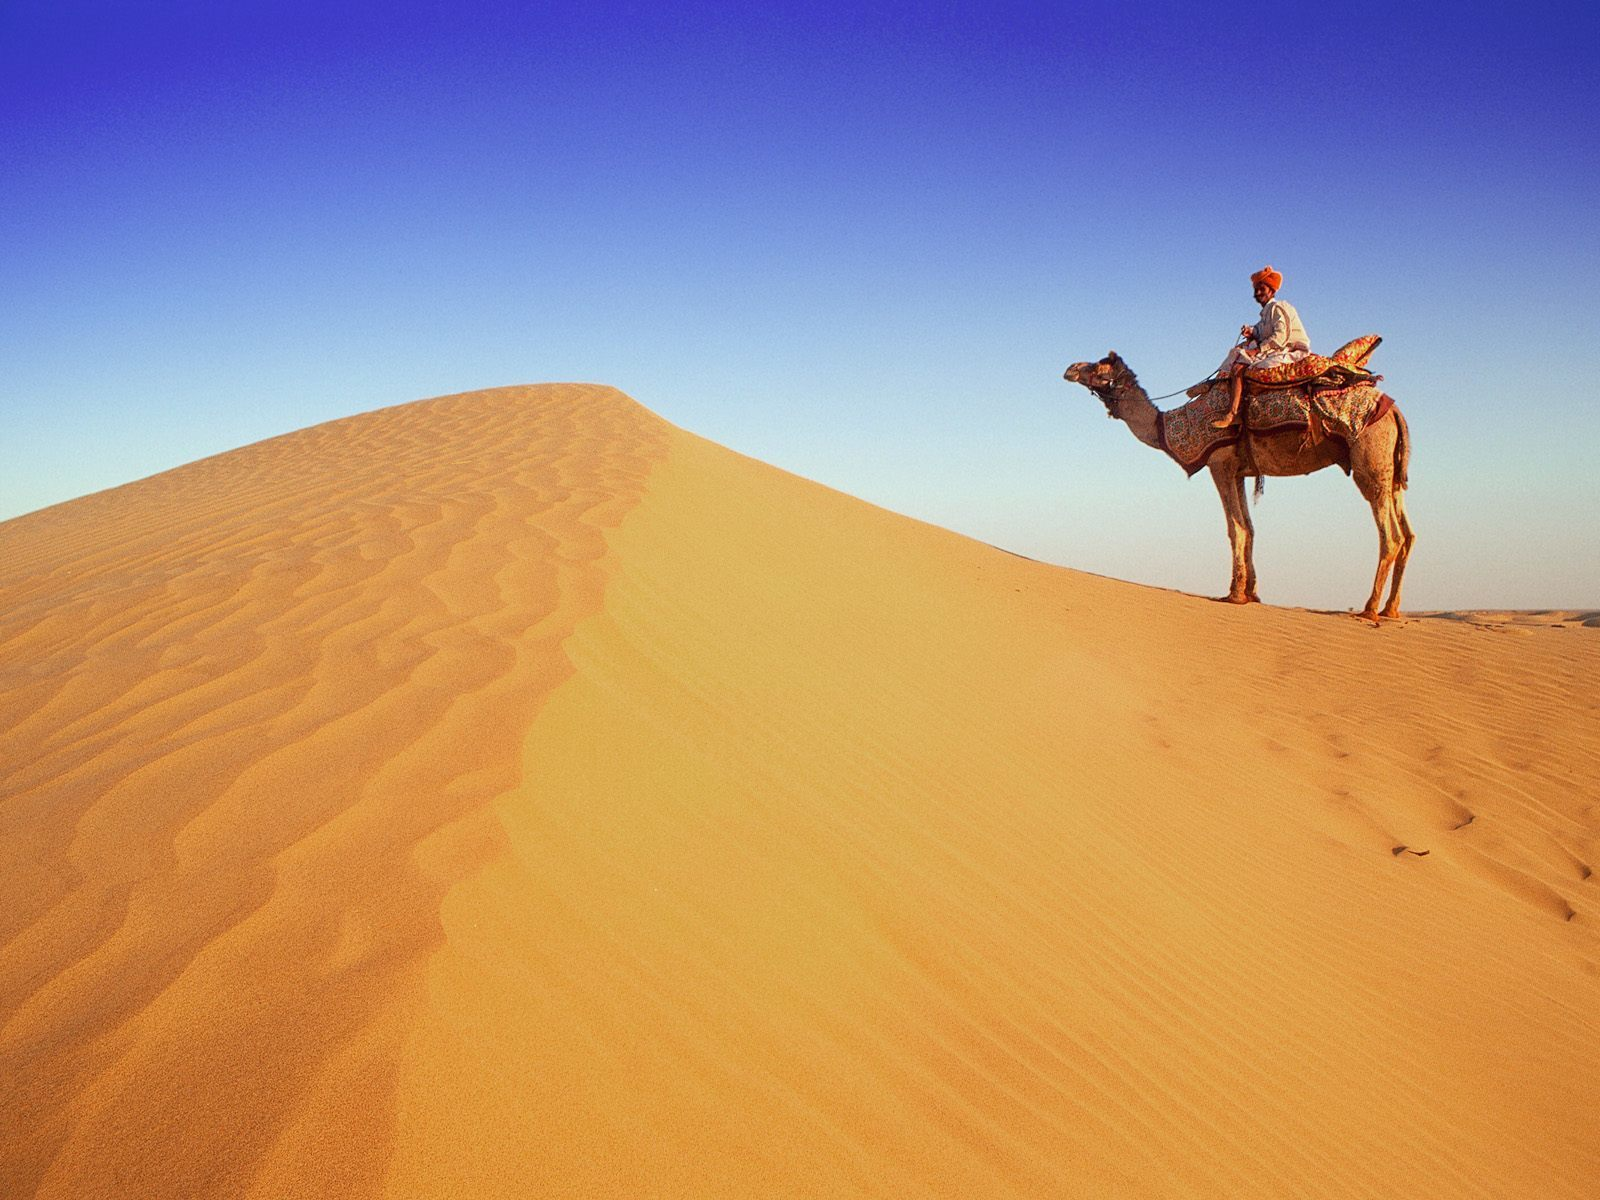 camel-walk-in-desert-wallpaper